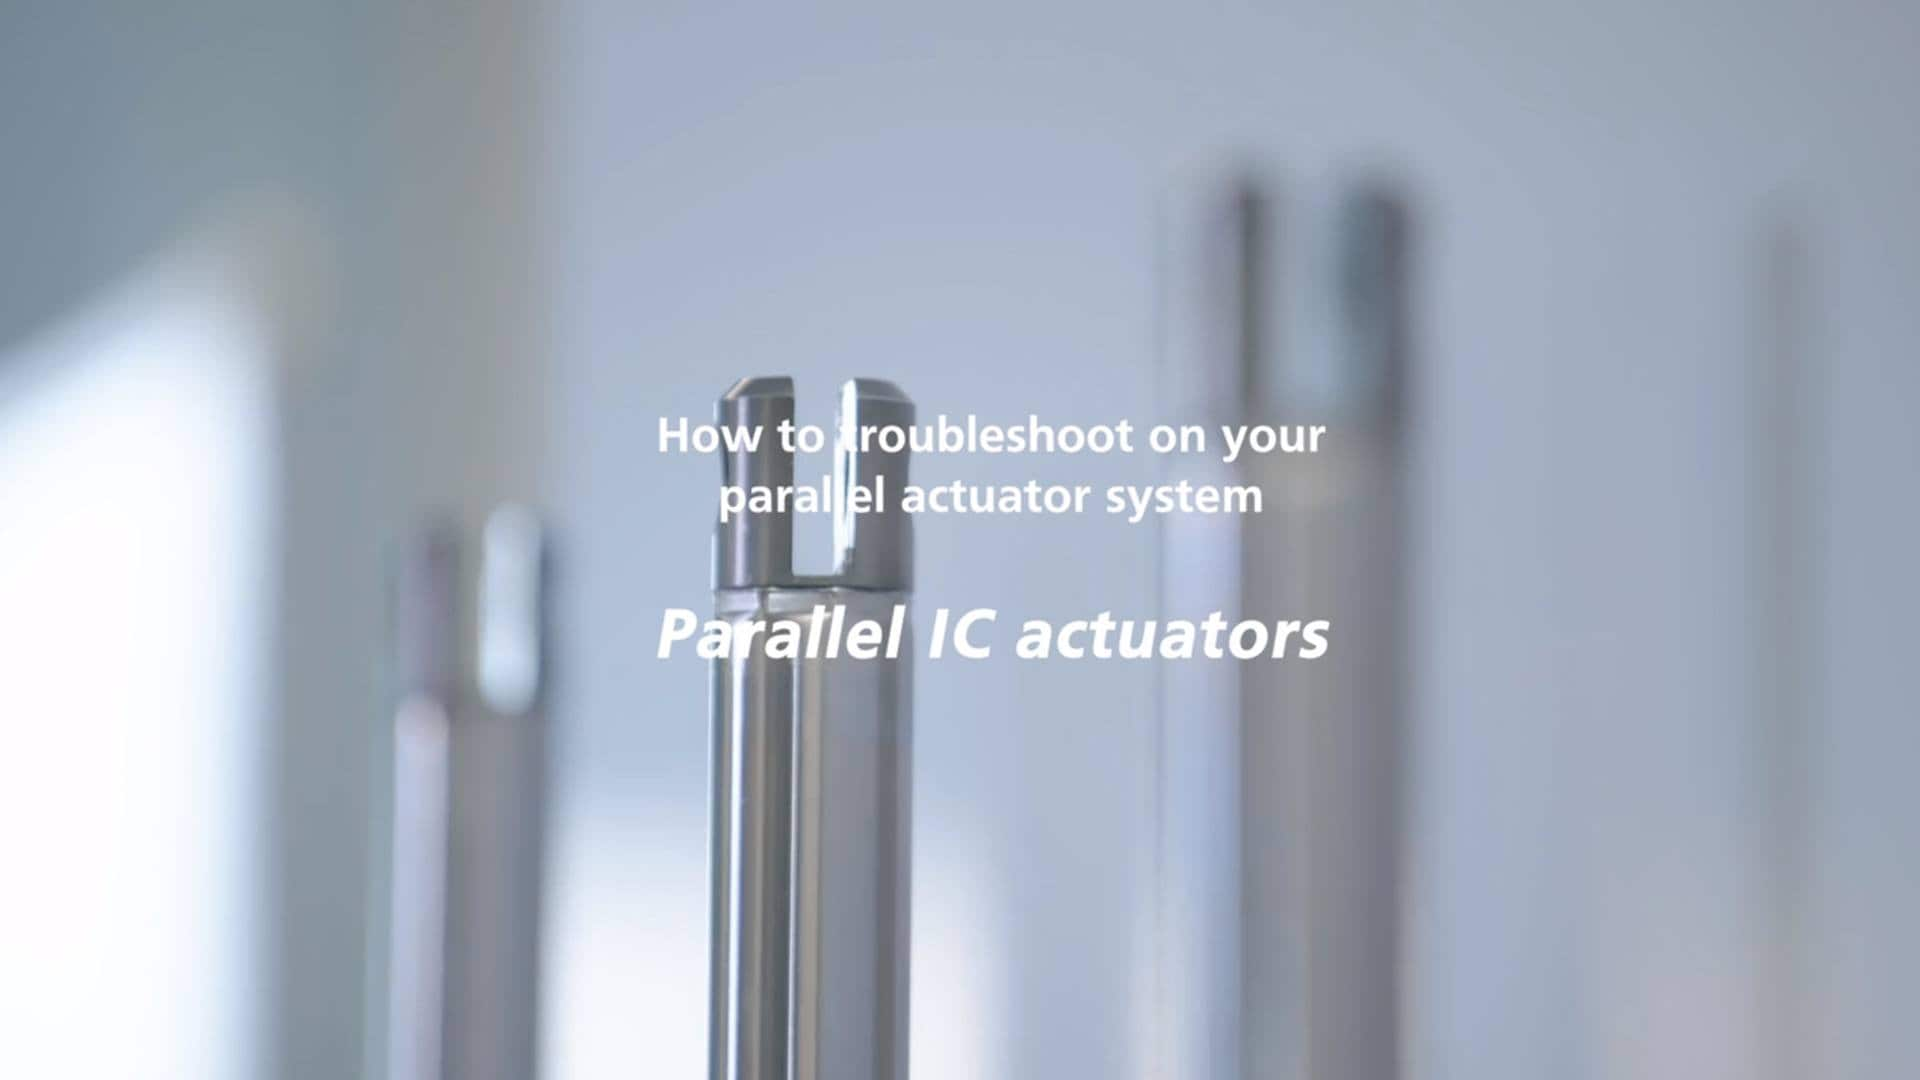 IC parallel actuator system - How to troubleshoot on the system